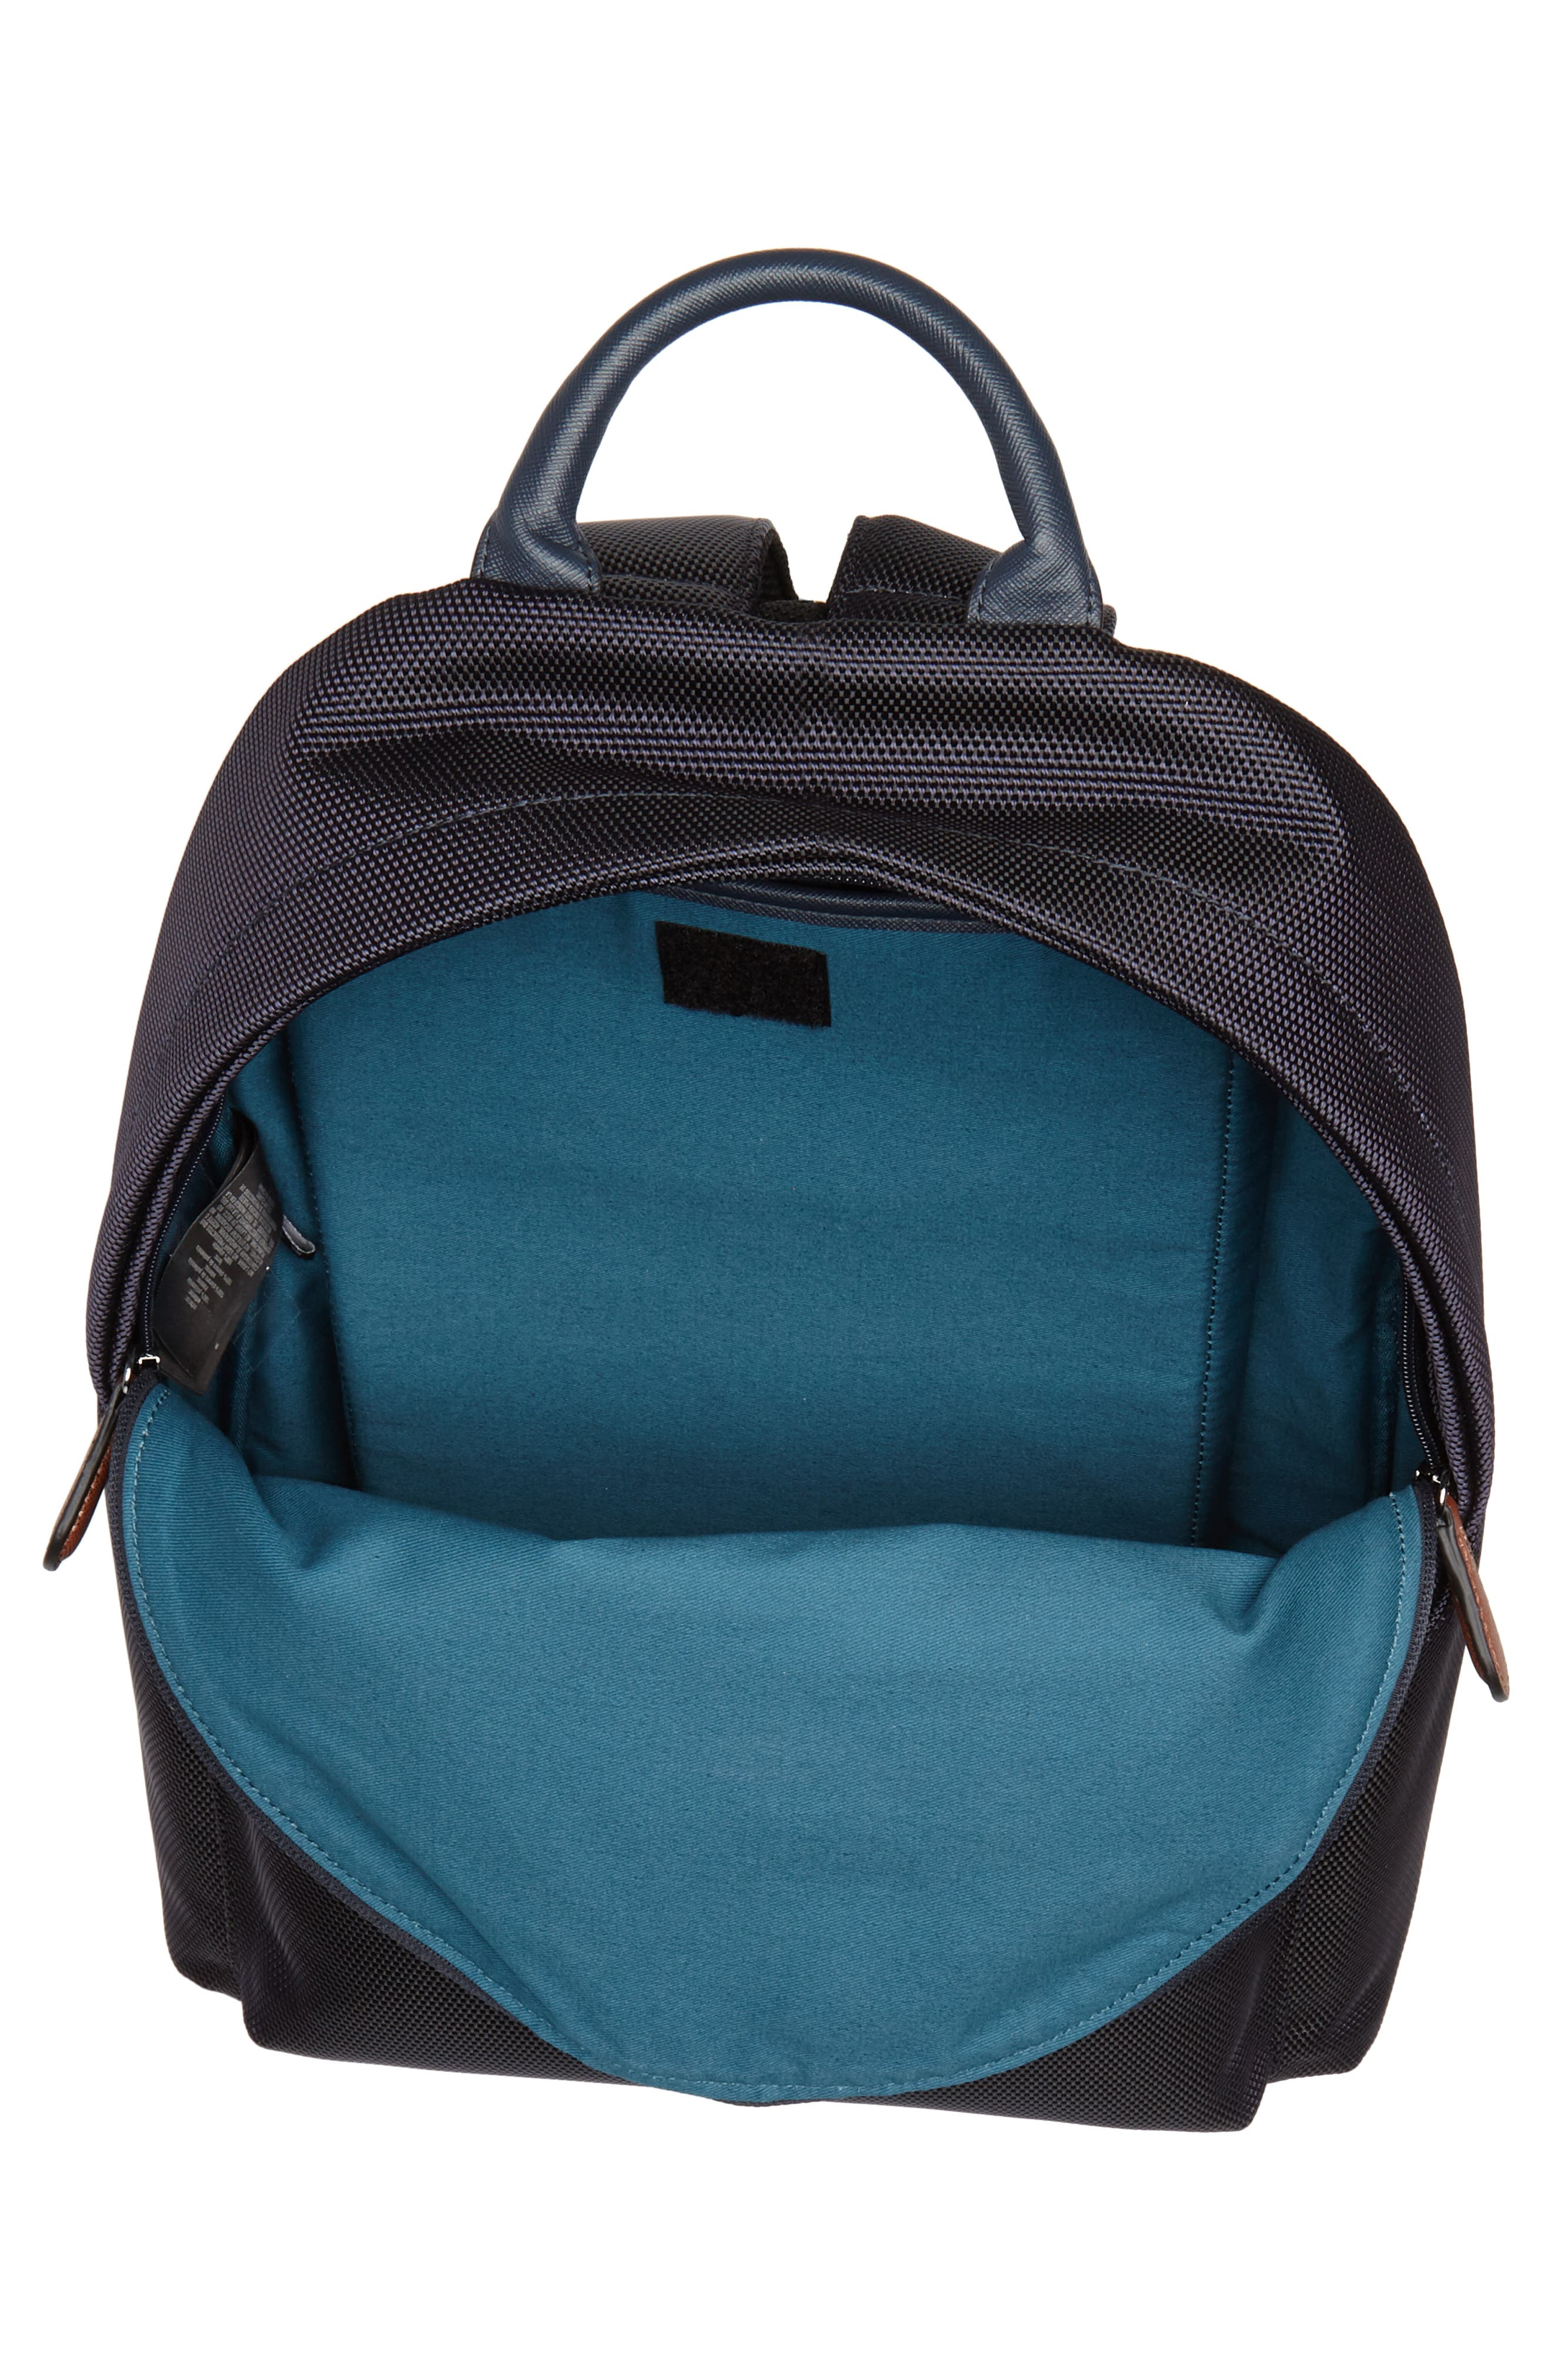 Brakes Backpack,                             Alternate thumbnail 4, color,                             Navy